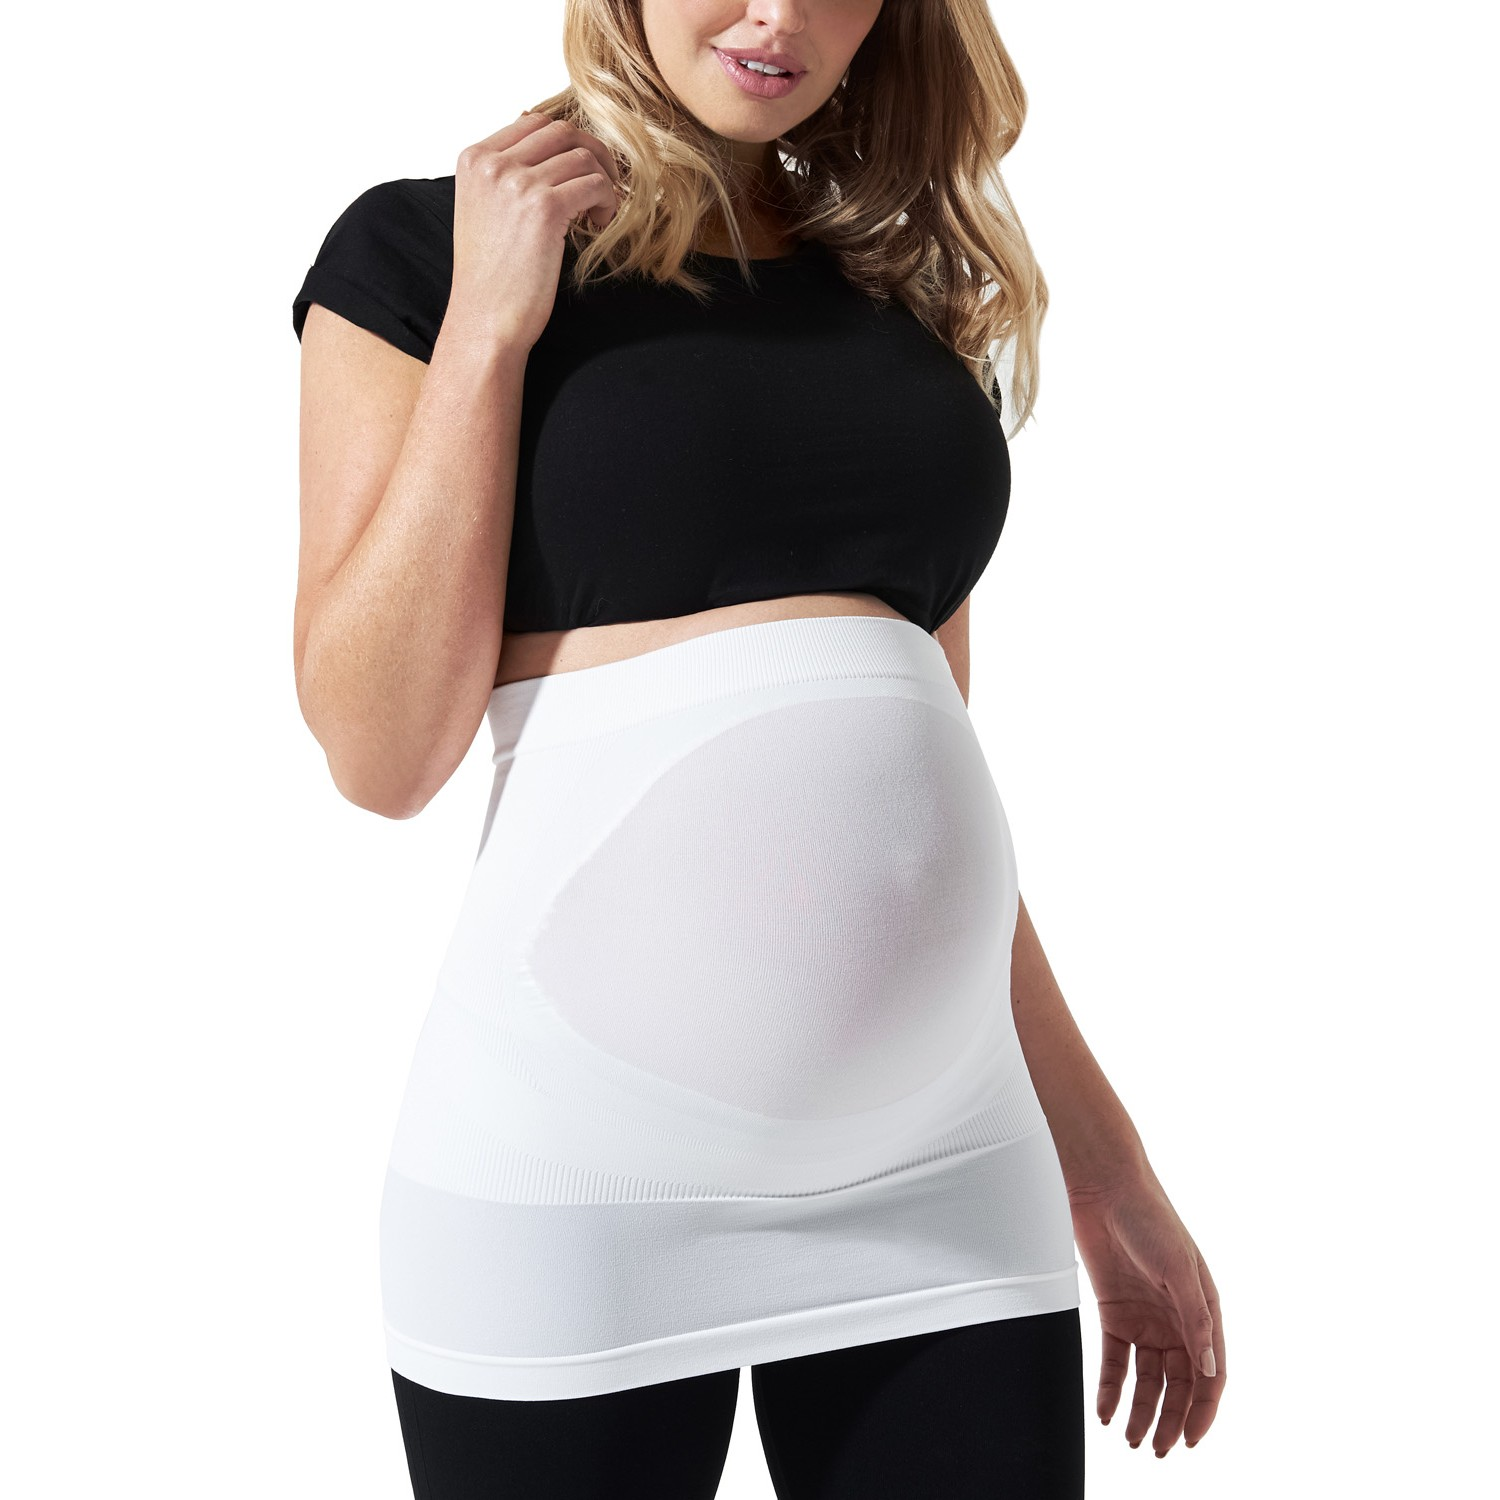 BLANQI EVERYDAY™ Maternity BUILT-IN SUPPORT Bellyband